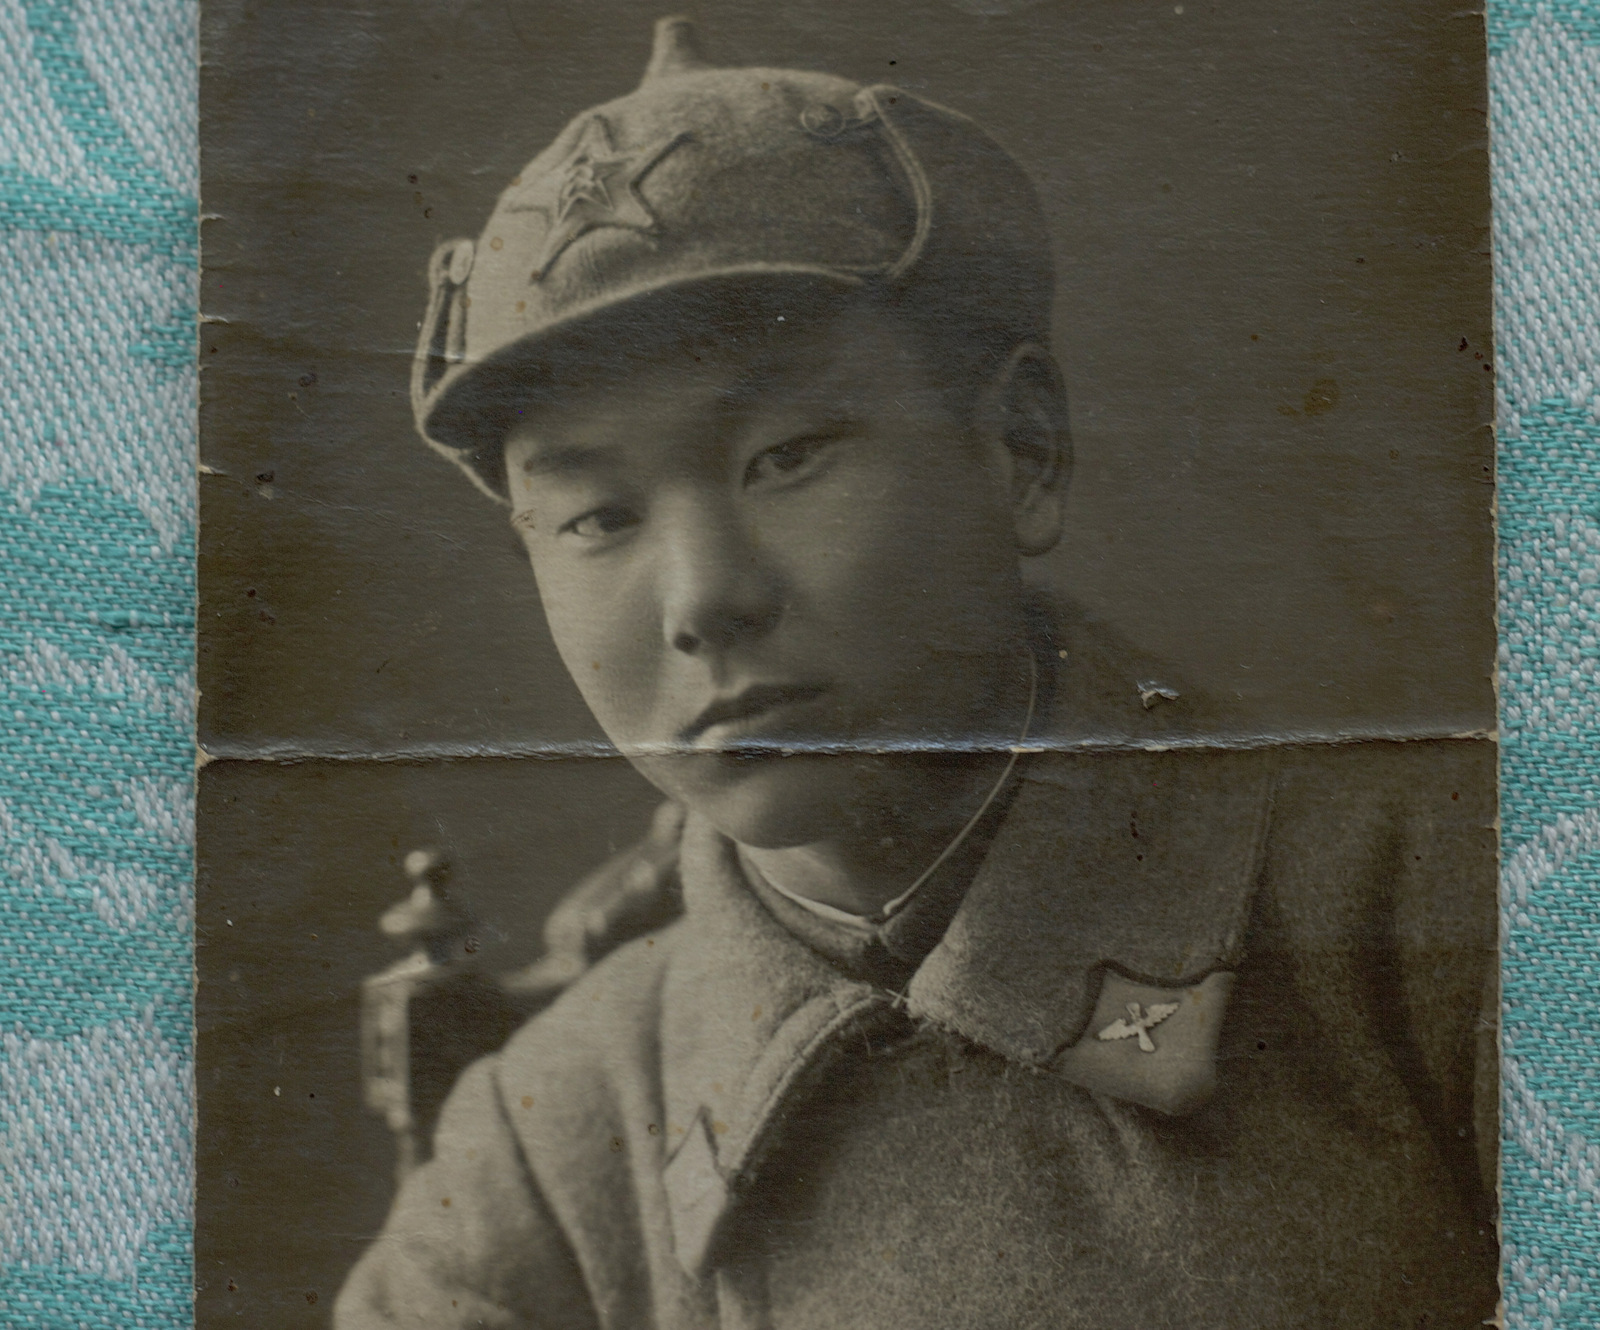 Fedor Lee in the Soviet army